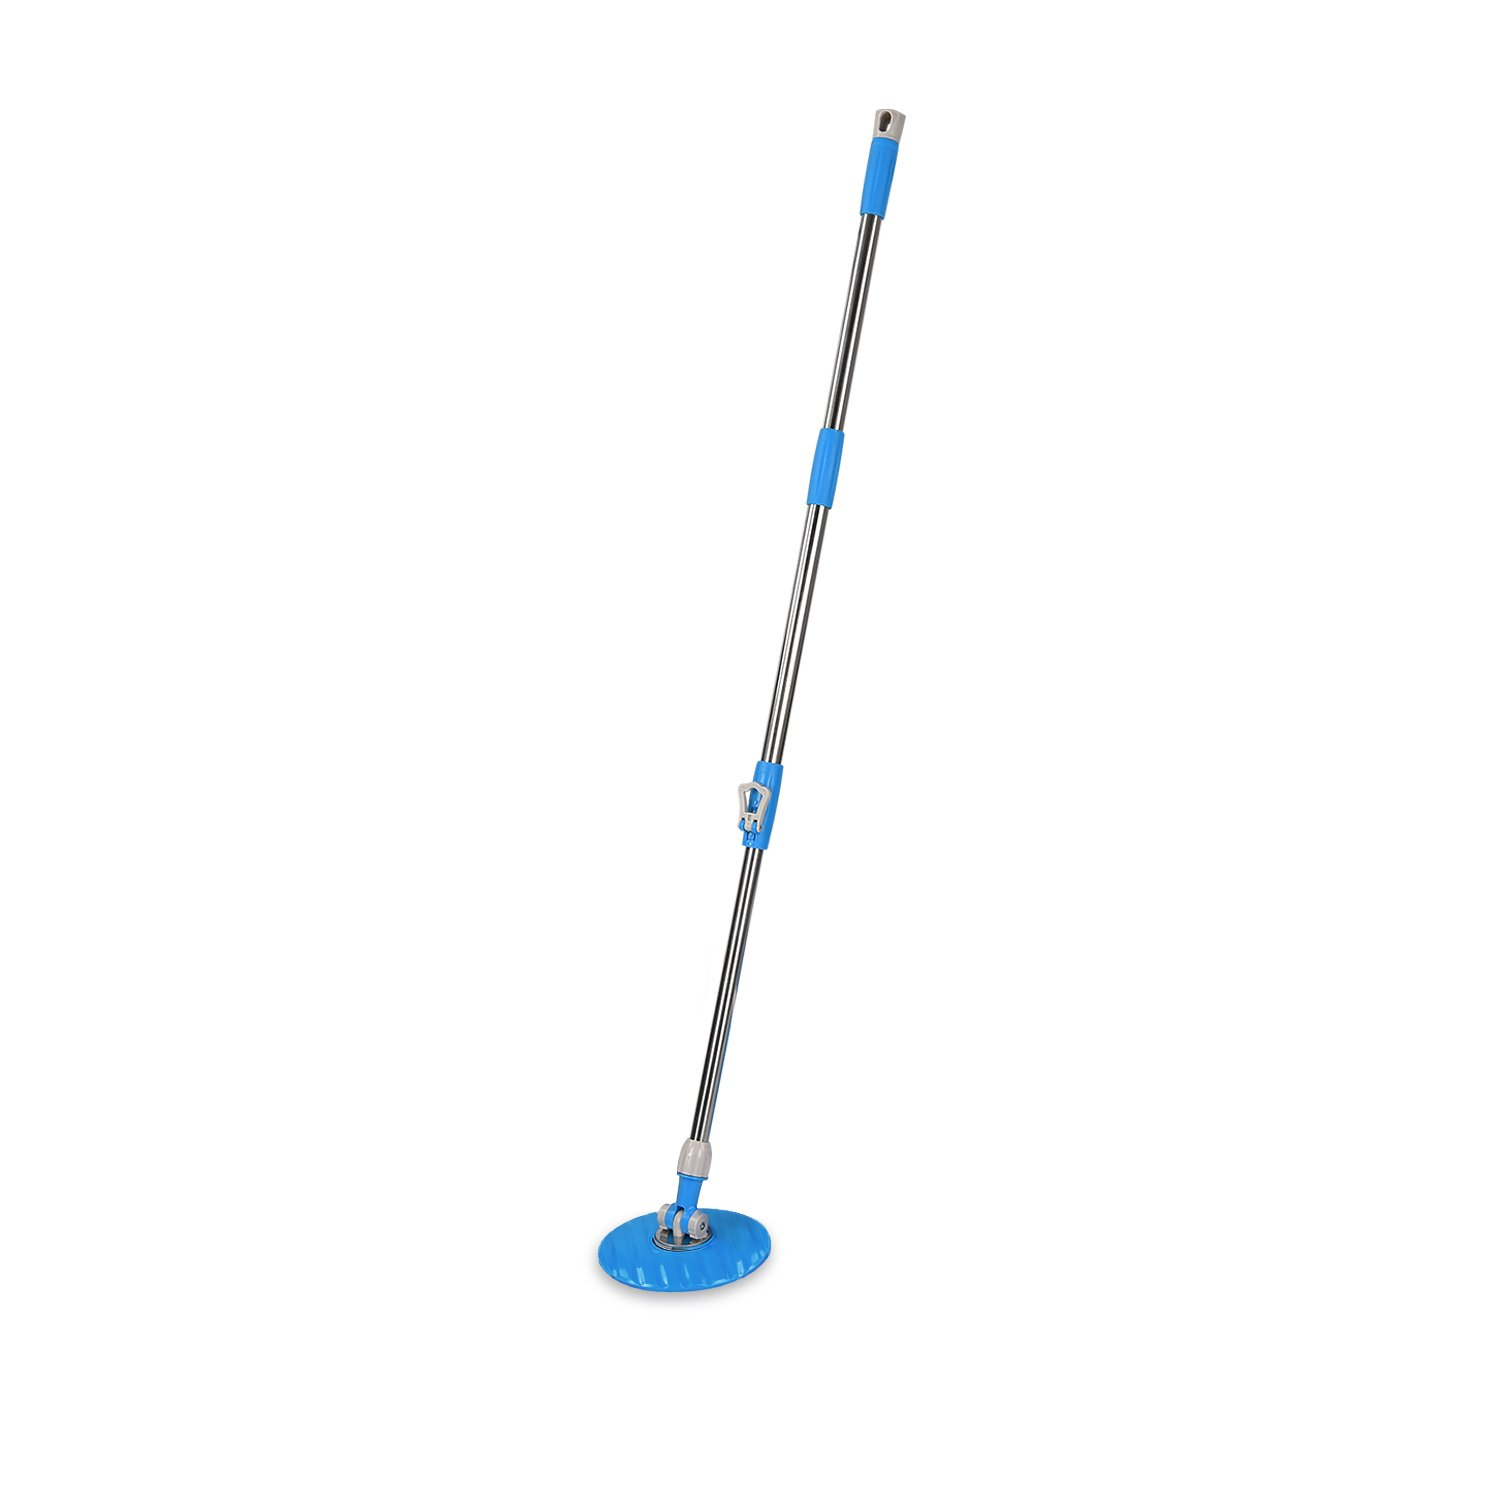 HAPINNEX Floor Mop Handle Replacement- Suitable for 360° Spin Cleaning Mops Bucket